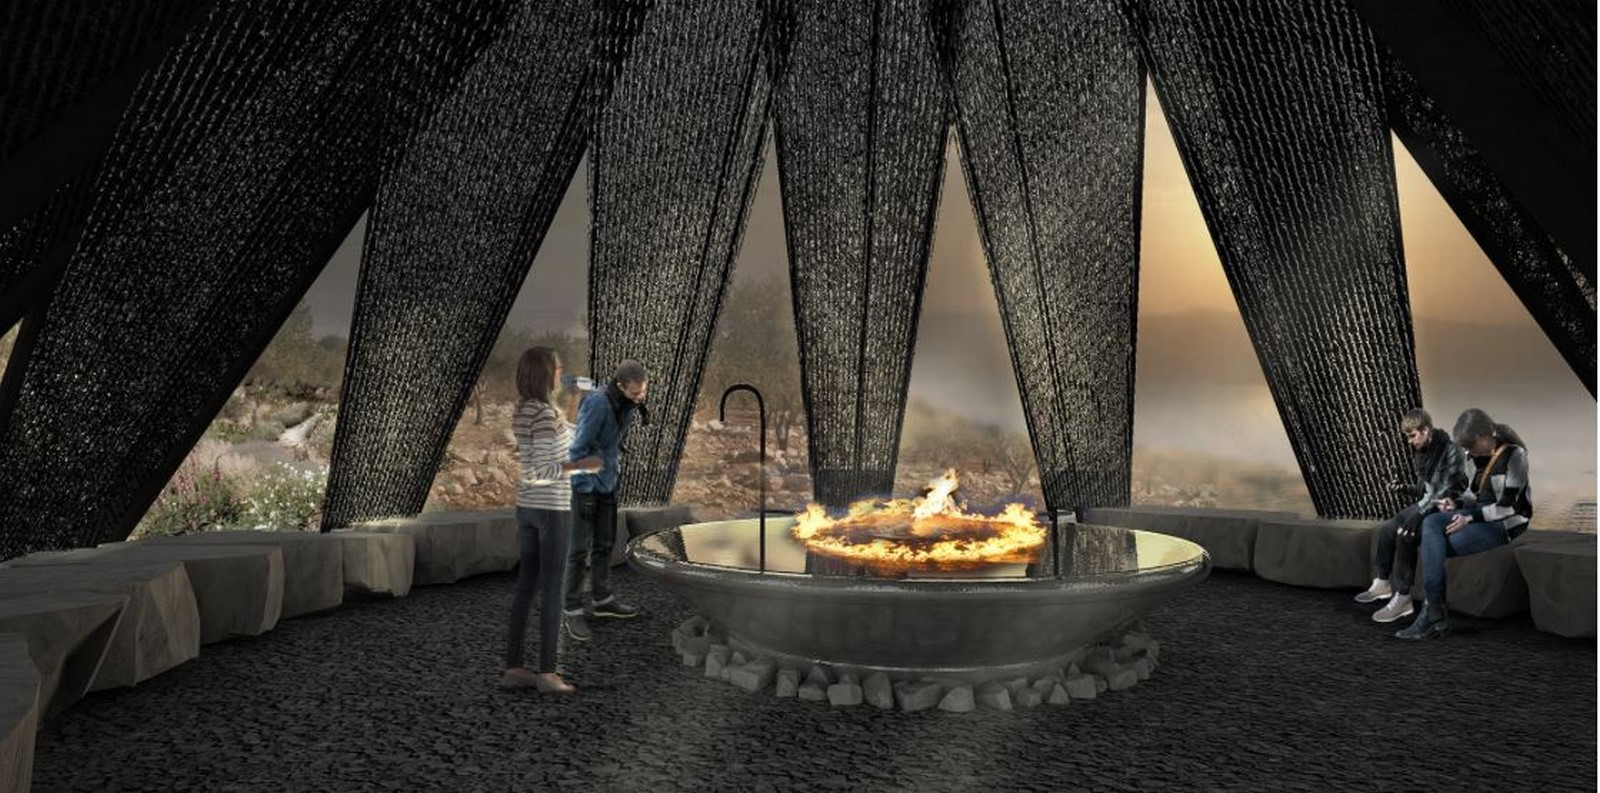 Nomad pavilion by Dina Haddadin and Rasem Kamal: Shelter and Water collection unit in Jordanian desert - Sheet16